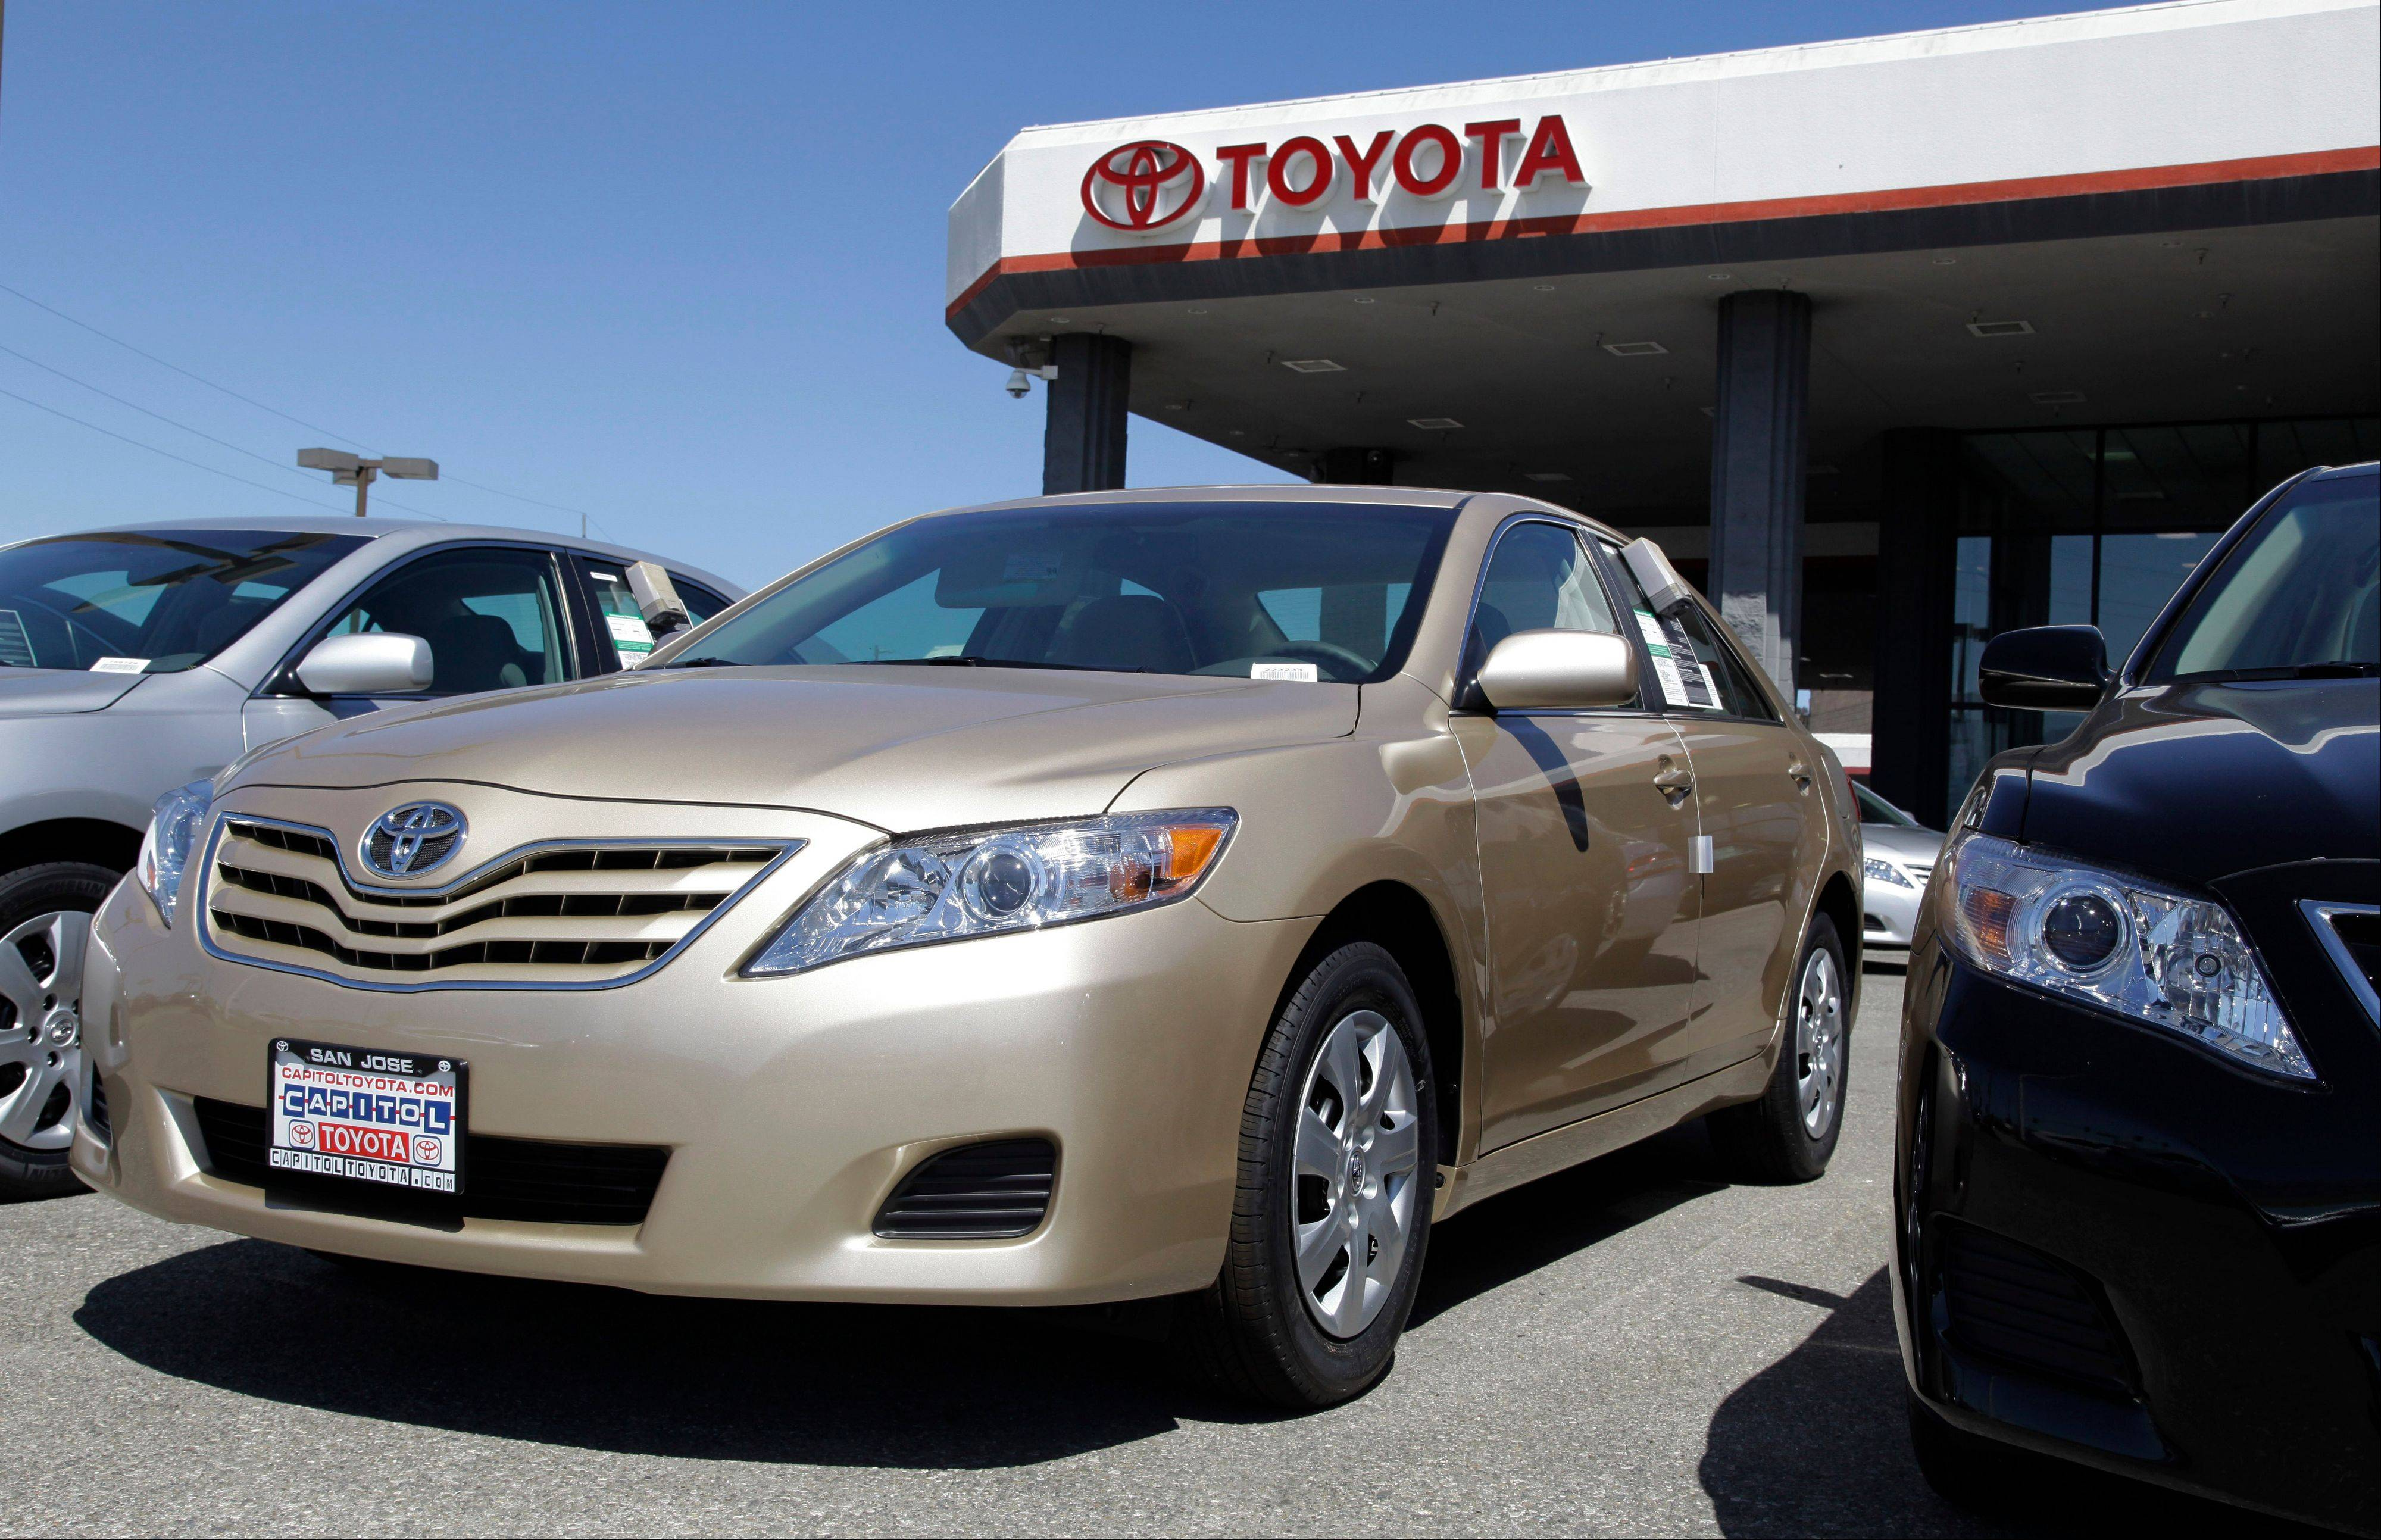 Toyota Camrys are parked at a car dealership in San Jose, Calif.